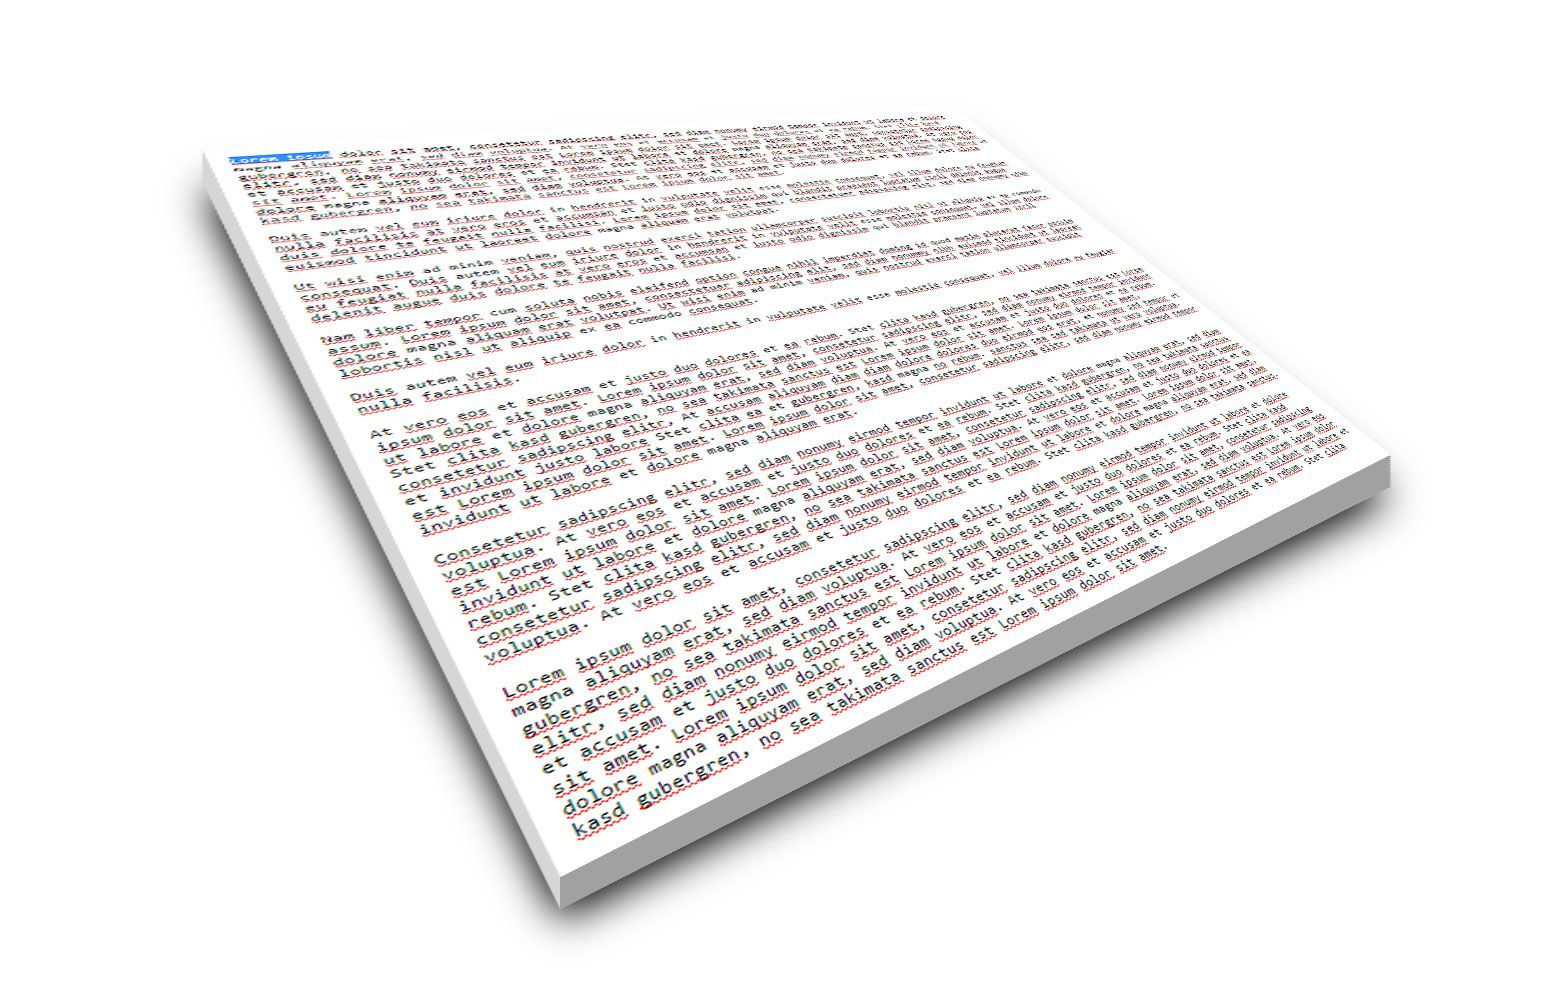 Write text notes on blank screen | Download App: markllet.de/app/nora.html